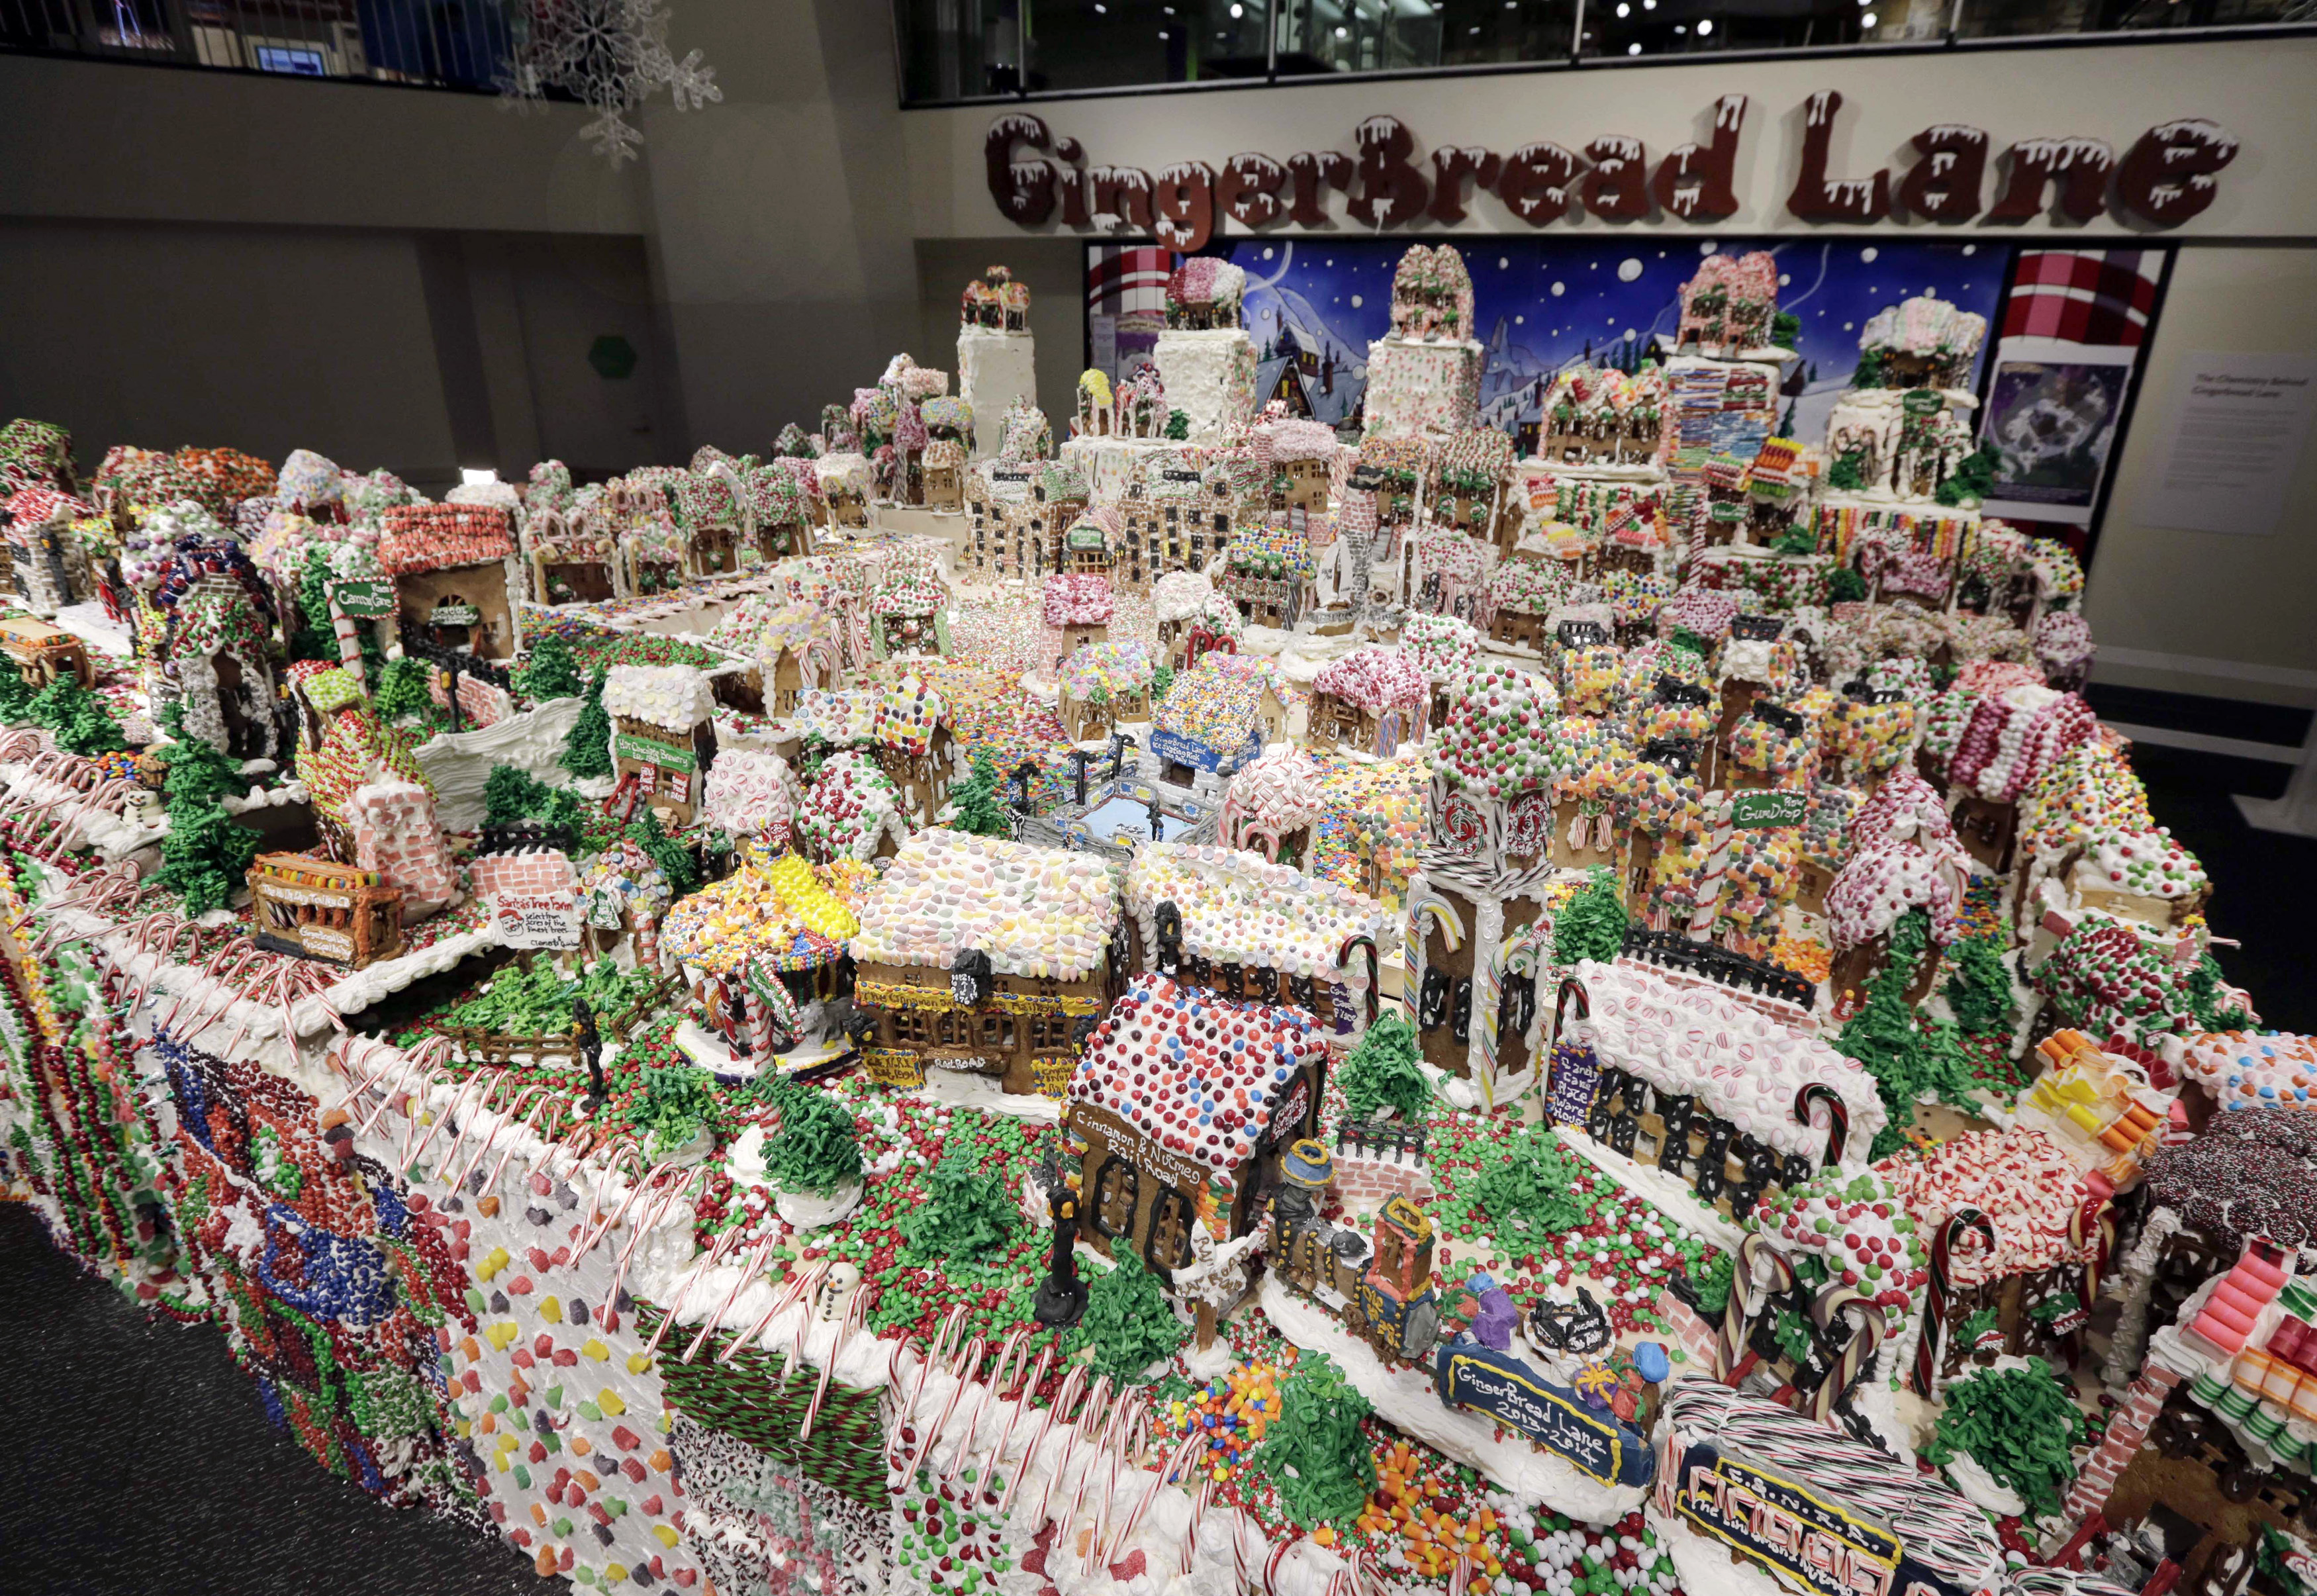 gingerbread lane created by chef jon lovitch is on display in the new york